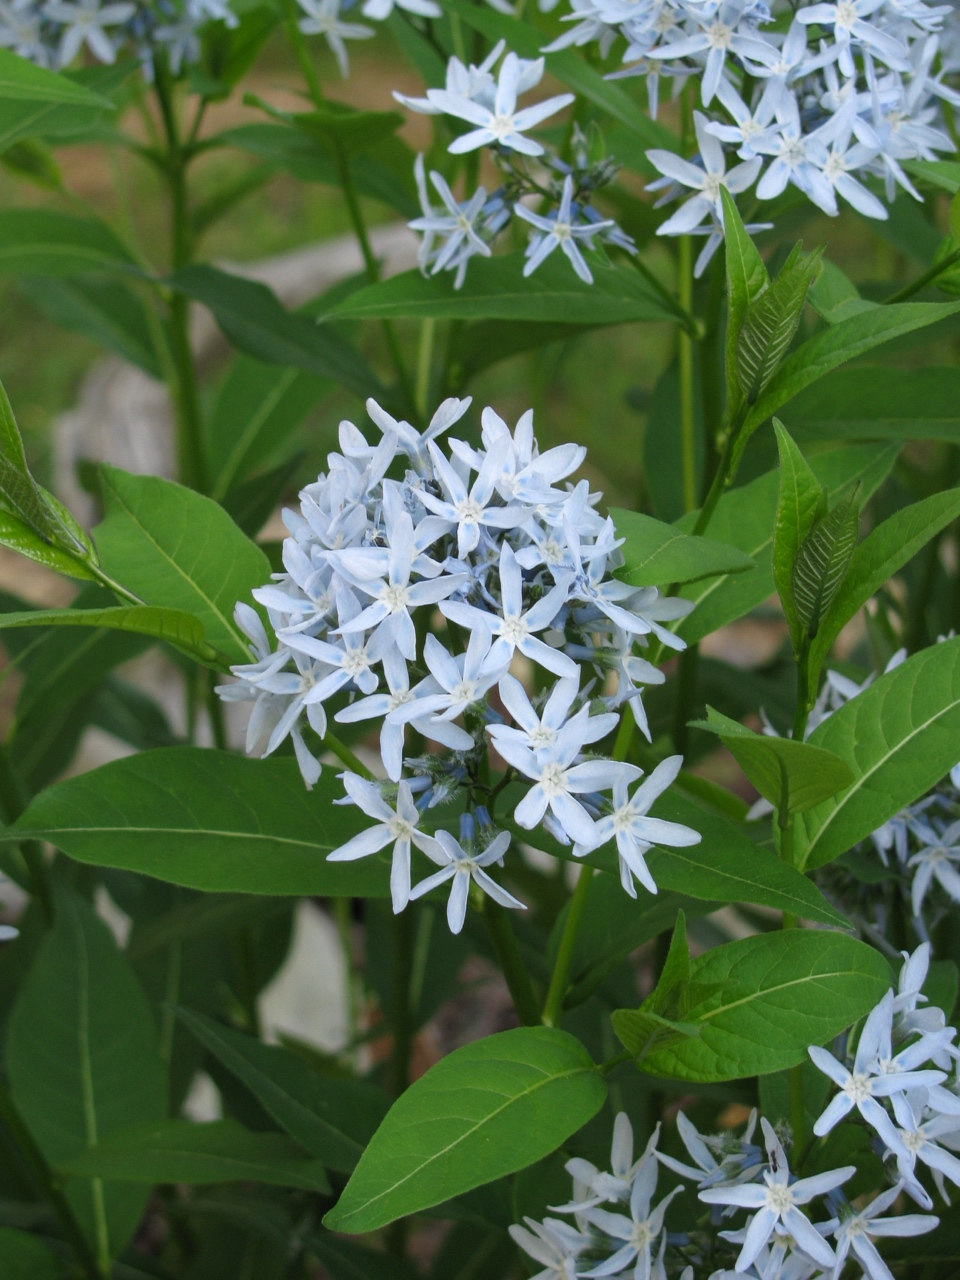 The Scientific Name is Amsonia tabernaemontana. You will likely hear them called Bluestar, Blue Dogbane, Willow Amsonia. This picture shows the Flowers in April-May of Amsonia tabernaemontana